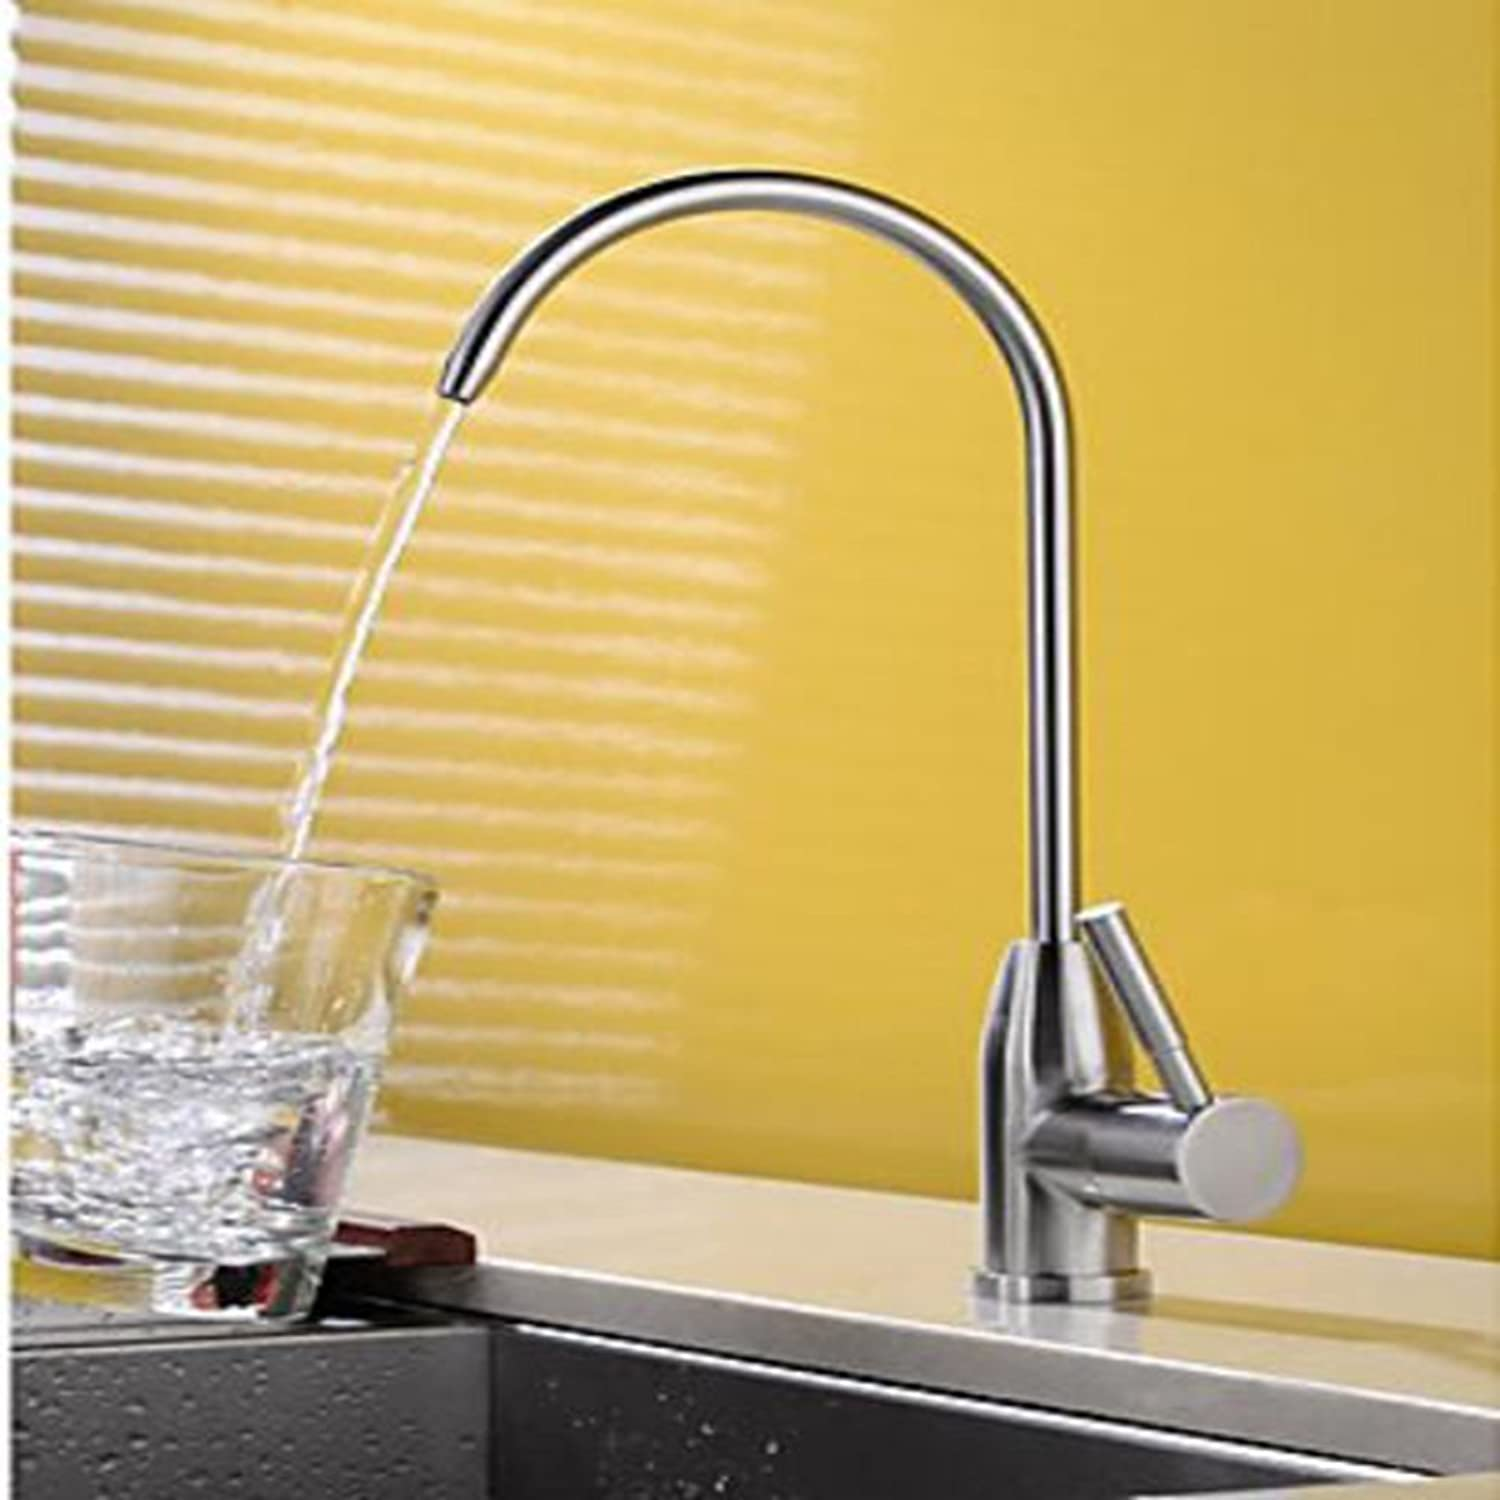 SISHUINIANHUA Kitchen Faucet - Contemporary Nickel Brushed Standard Spout Deck Mounted